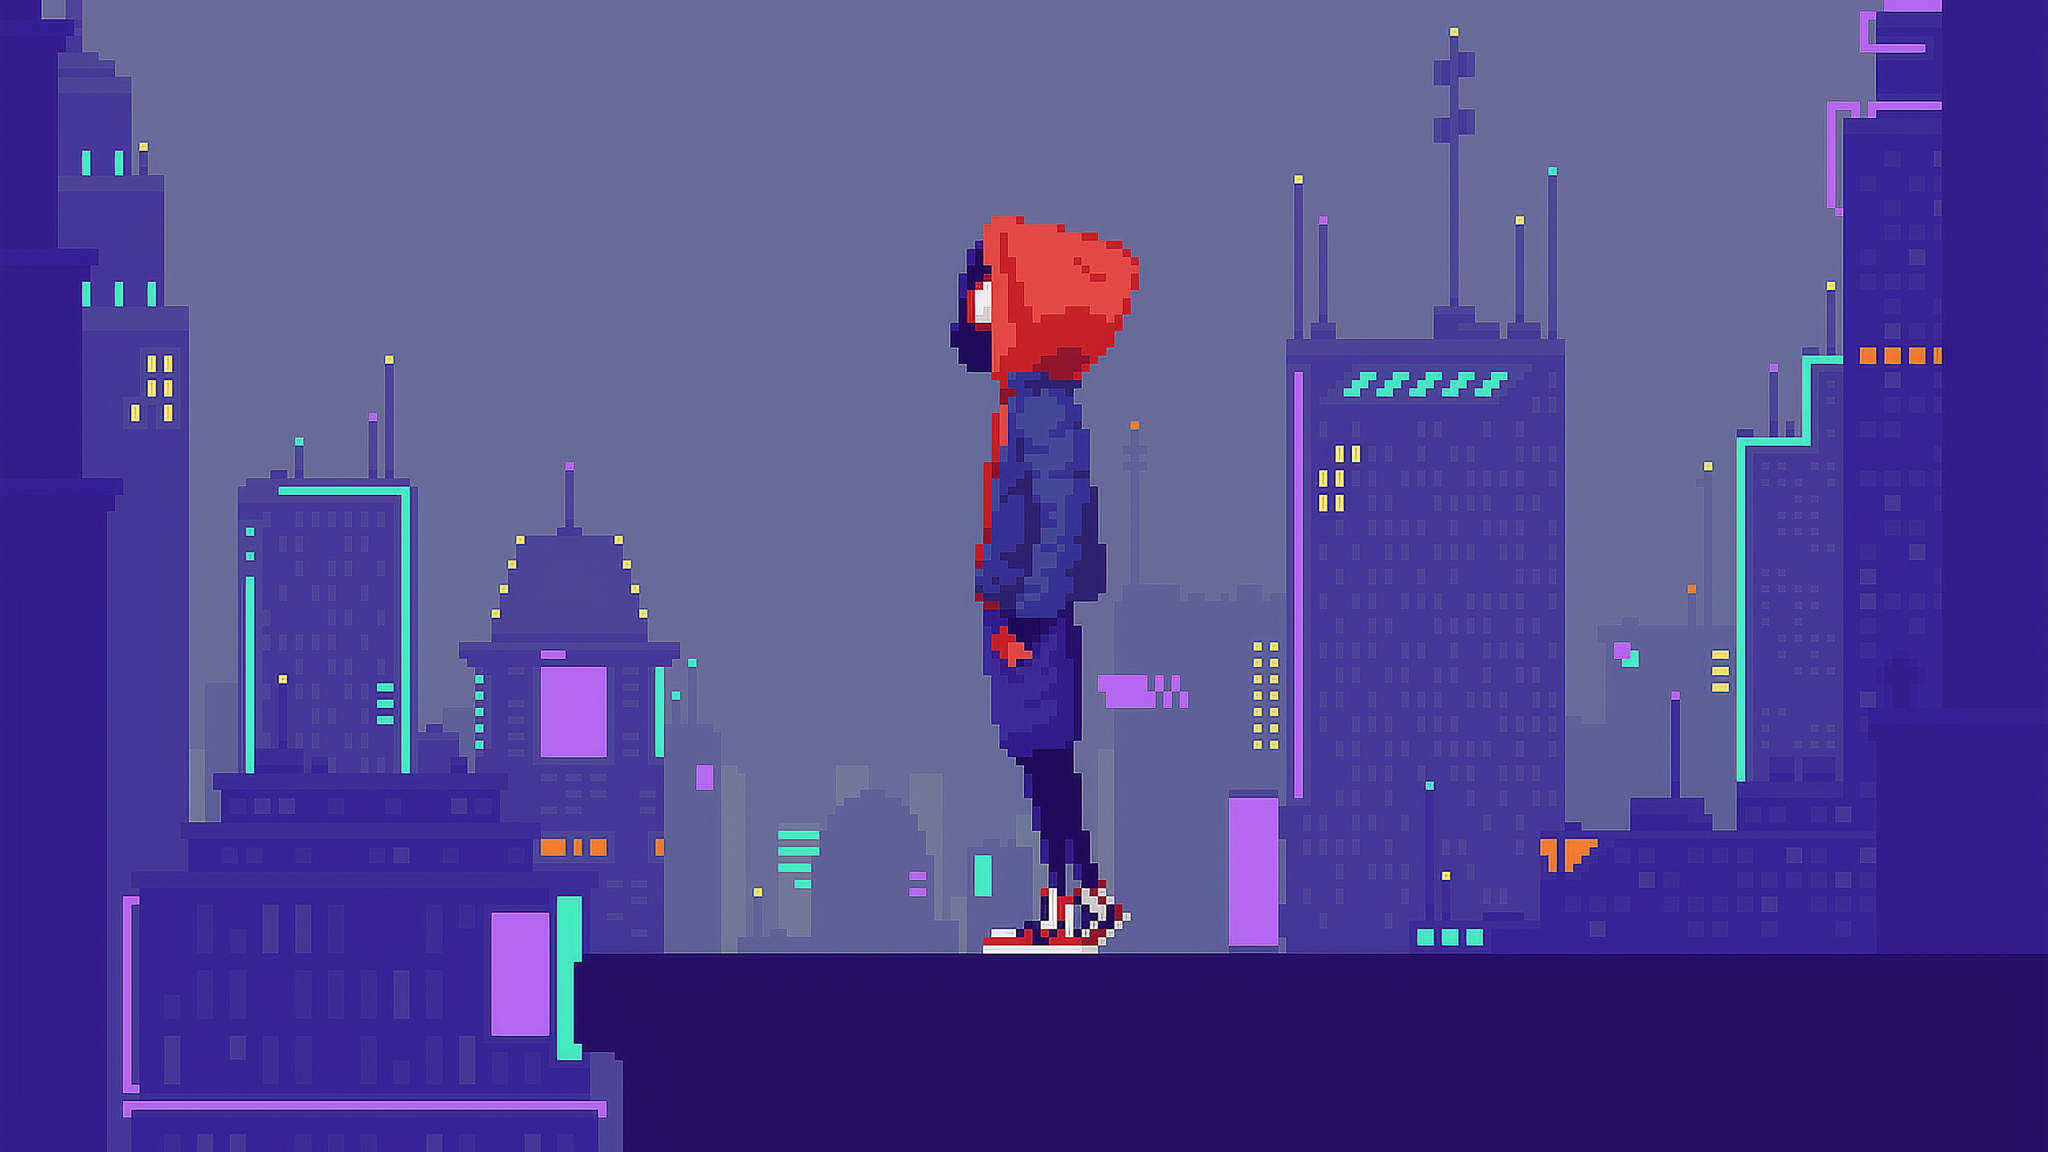 2048x1152 Miles Morales Pixel Art 2048x1152 Resolution Hd 4k